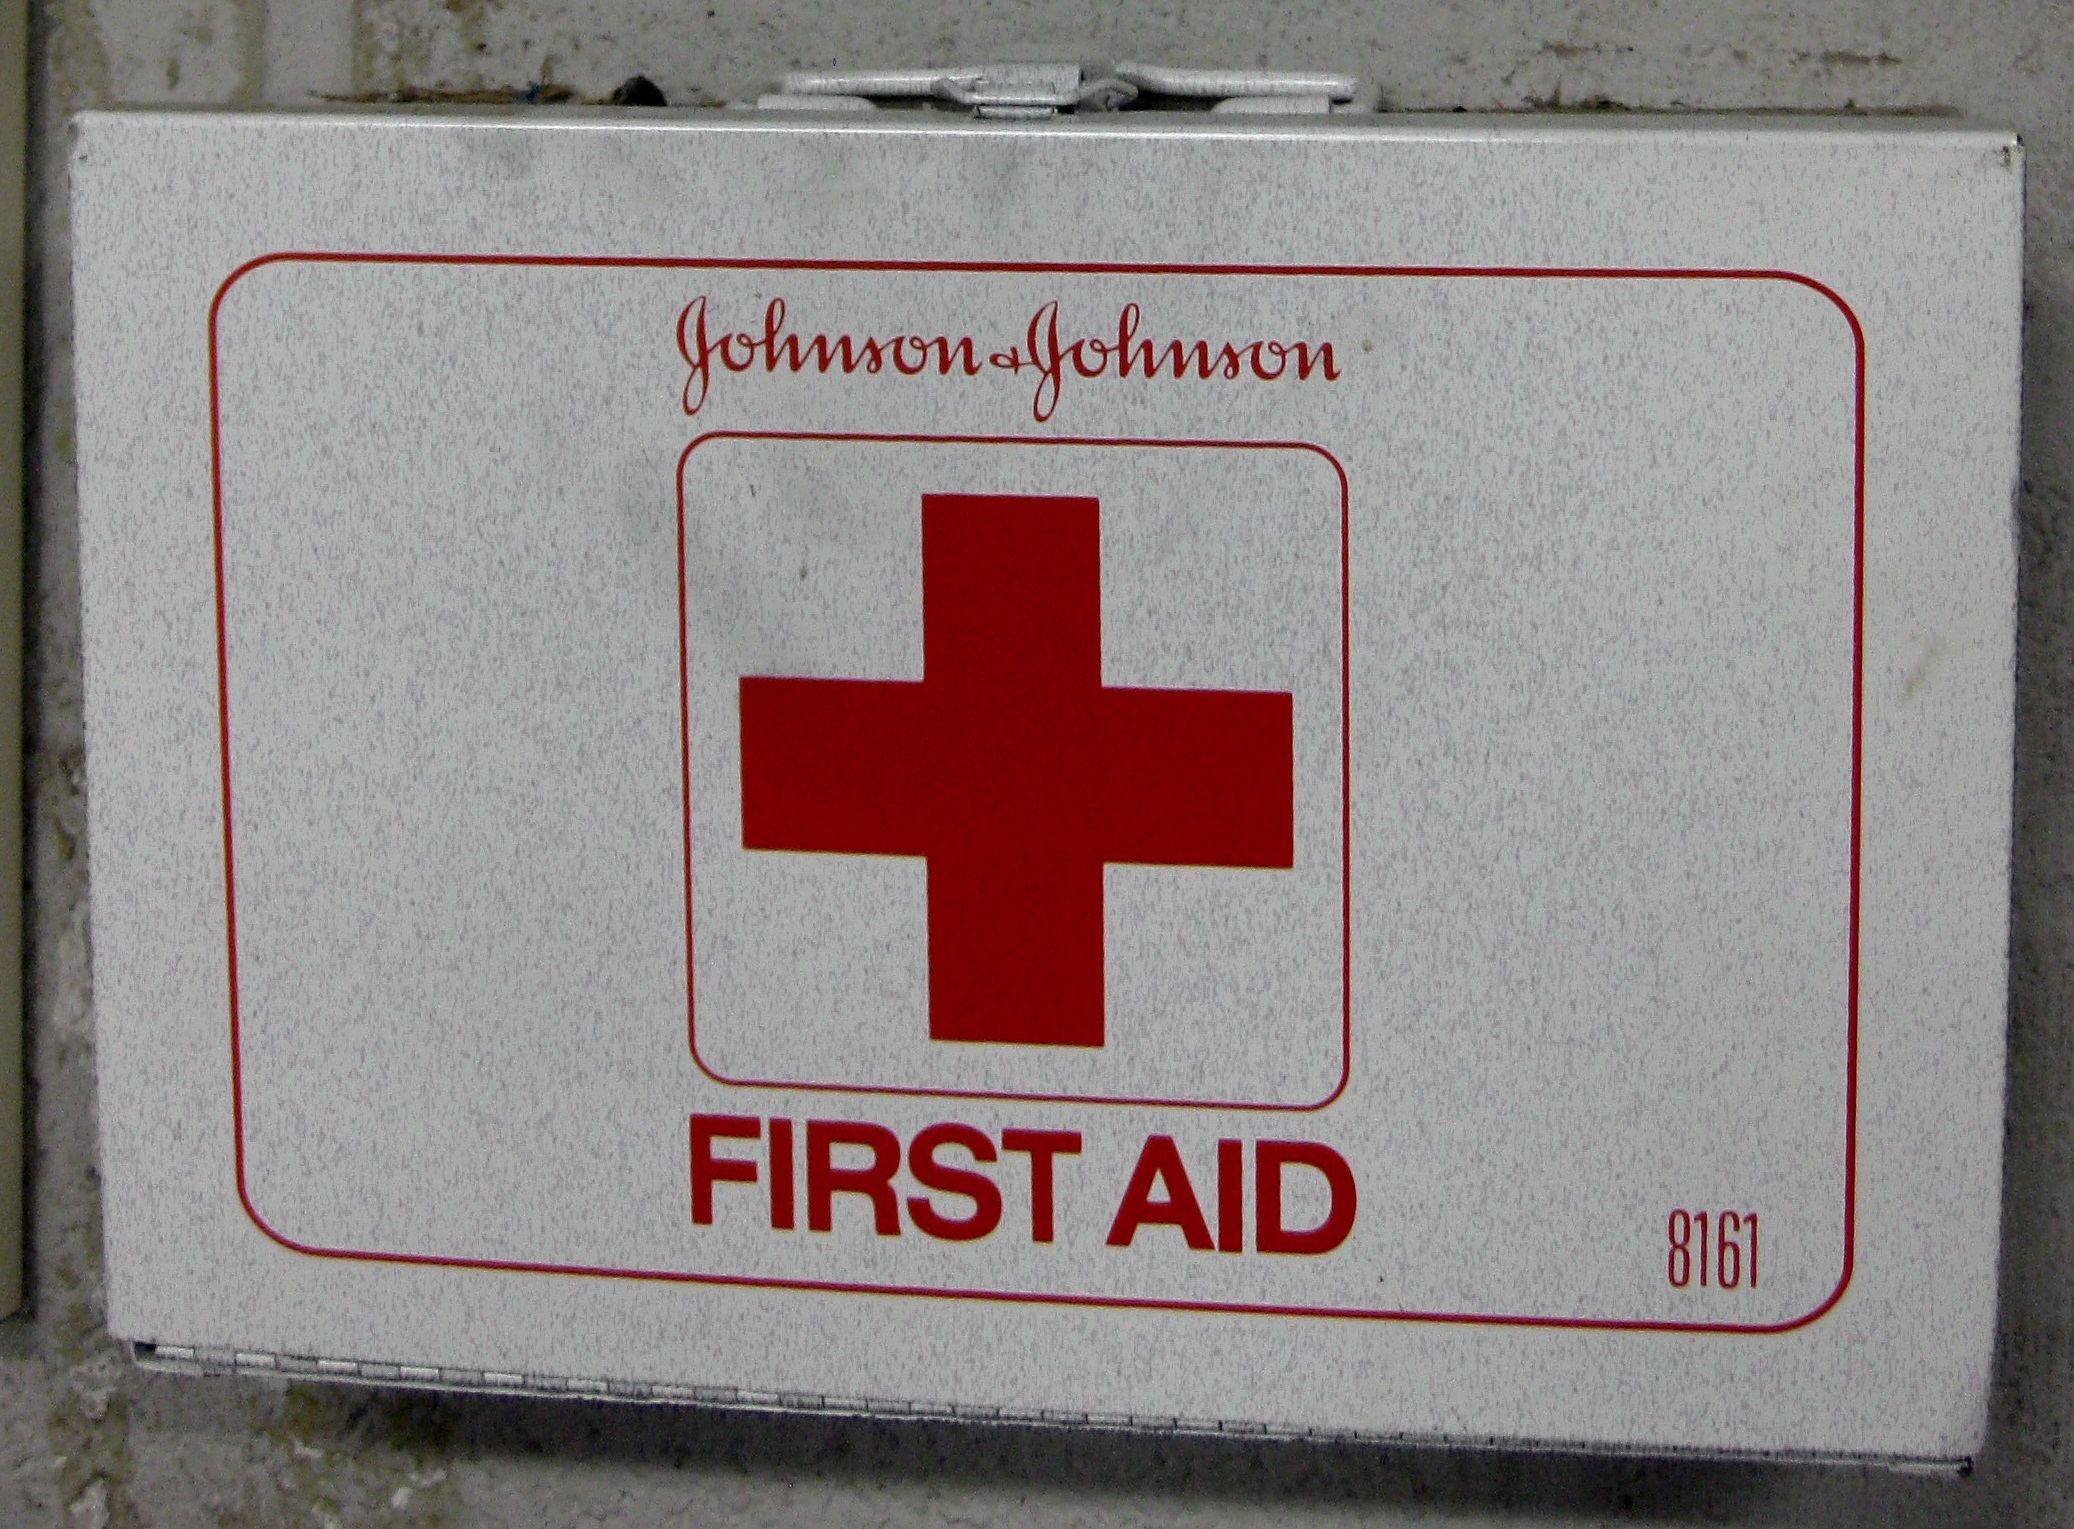 First Aid Kit. Photo Source: Penn State University